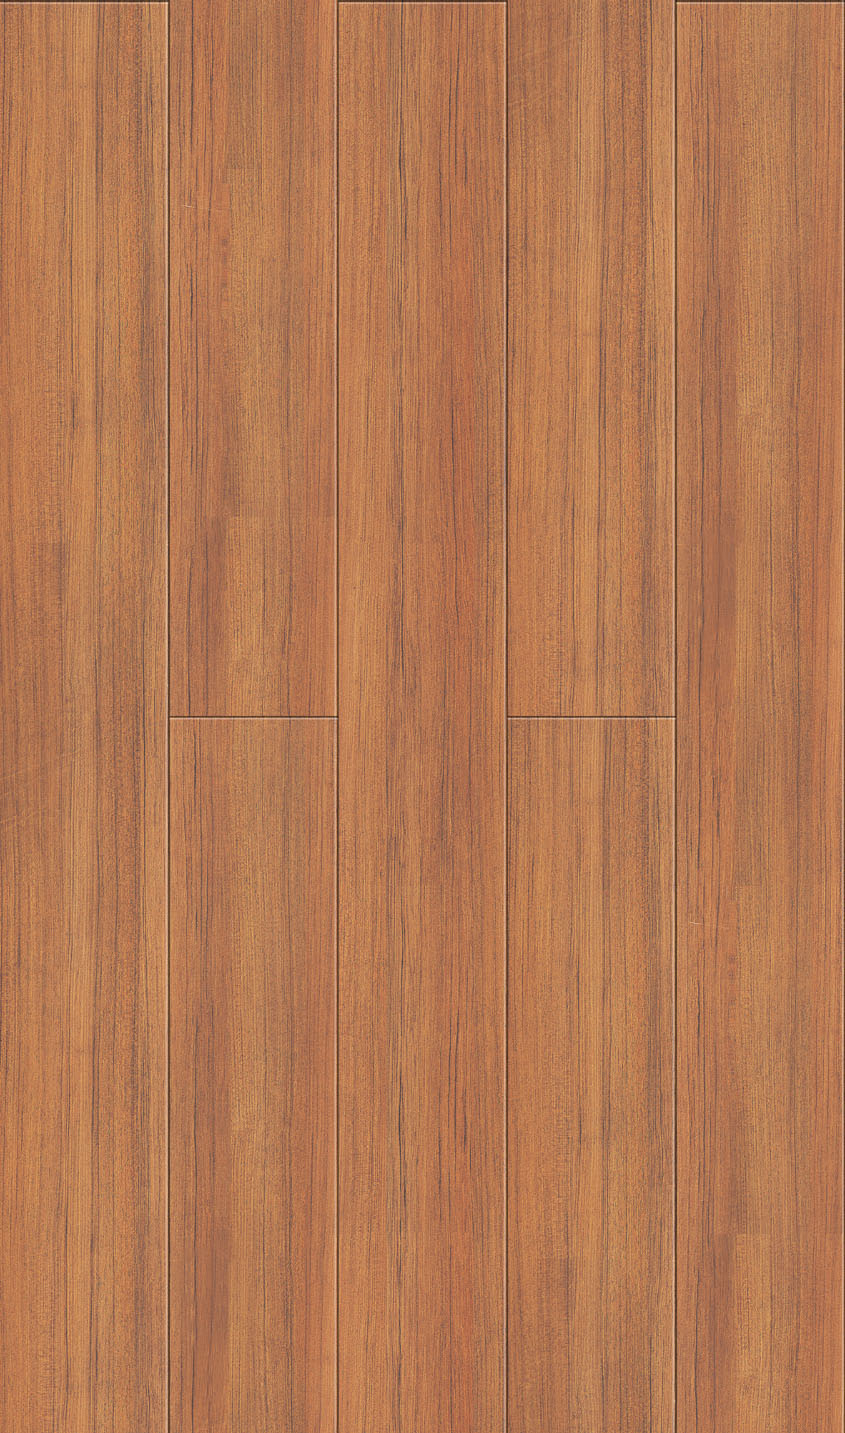 Wood Floor Specifications 1213mm 143mm Free 3d